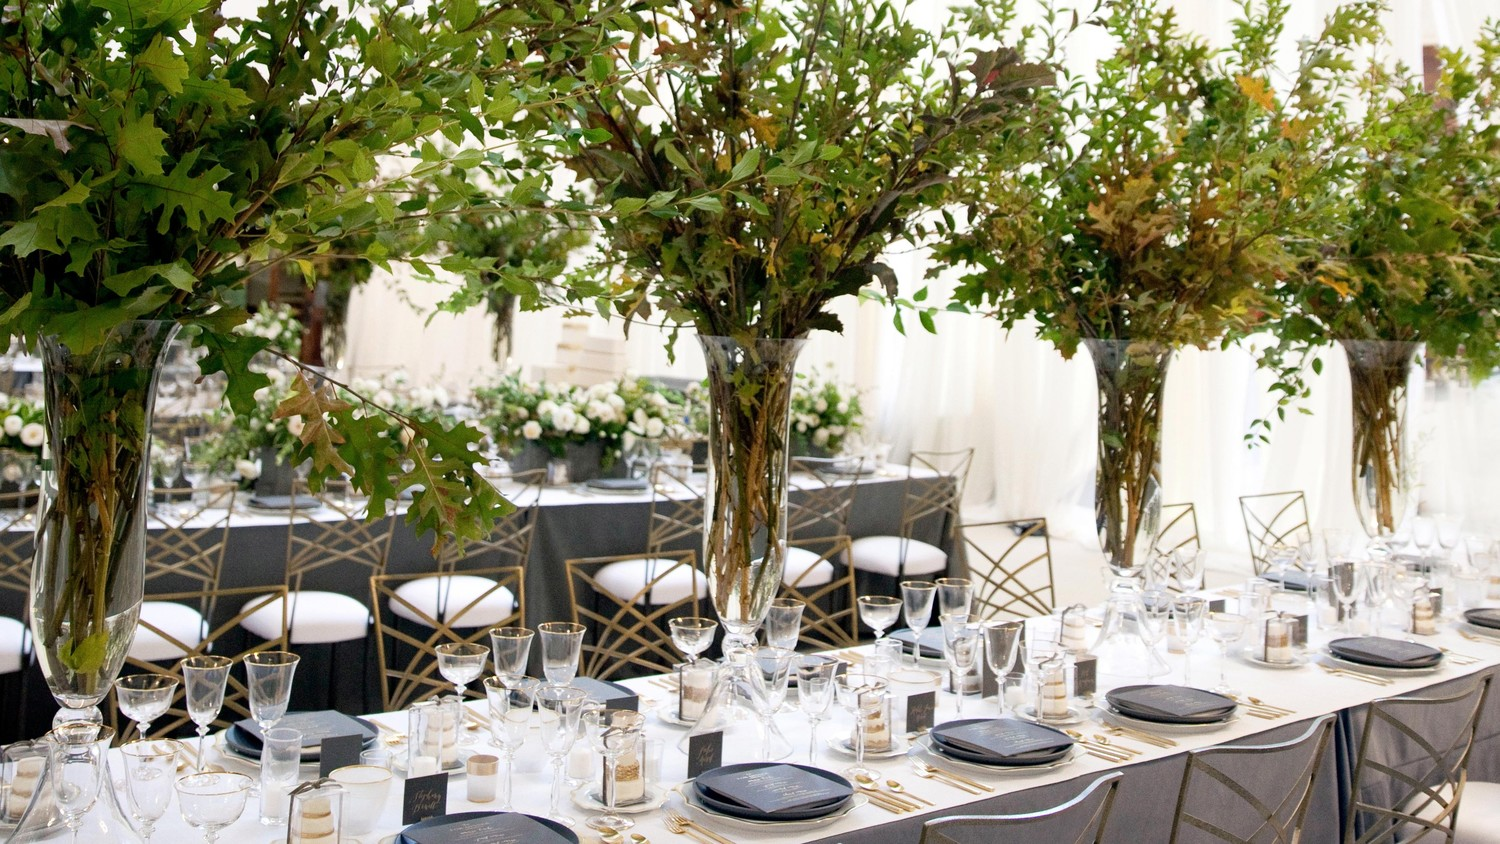 Martha Stewart Weddings: Tall Centerpieces That Will Take Your Reception Tables To